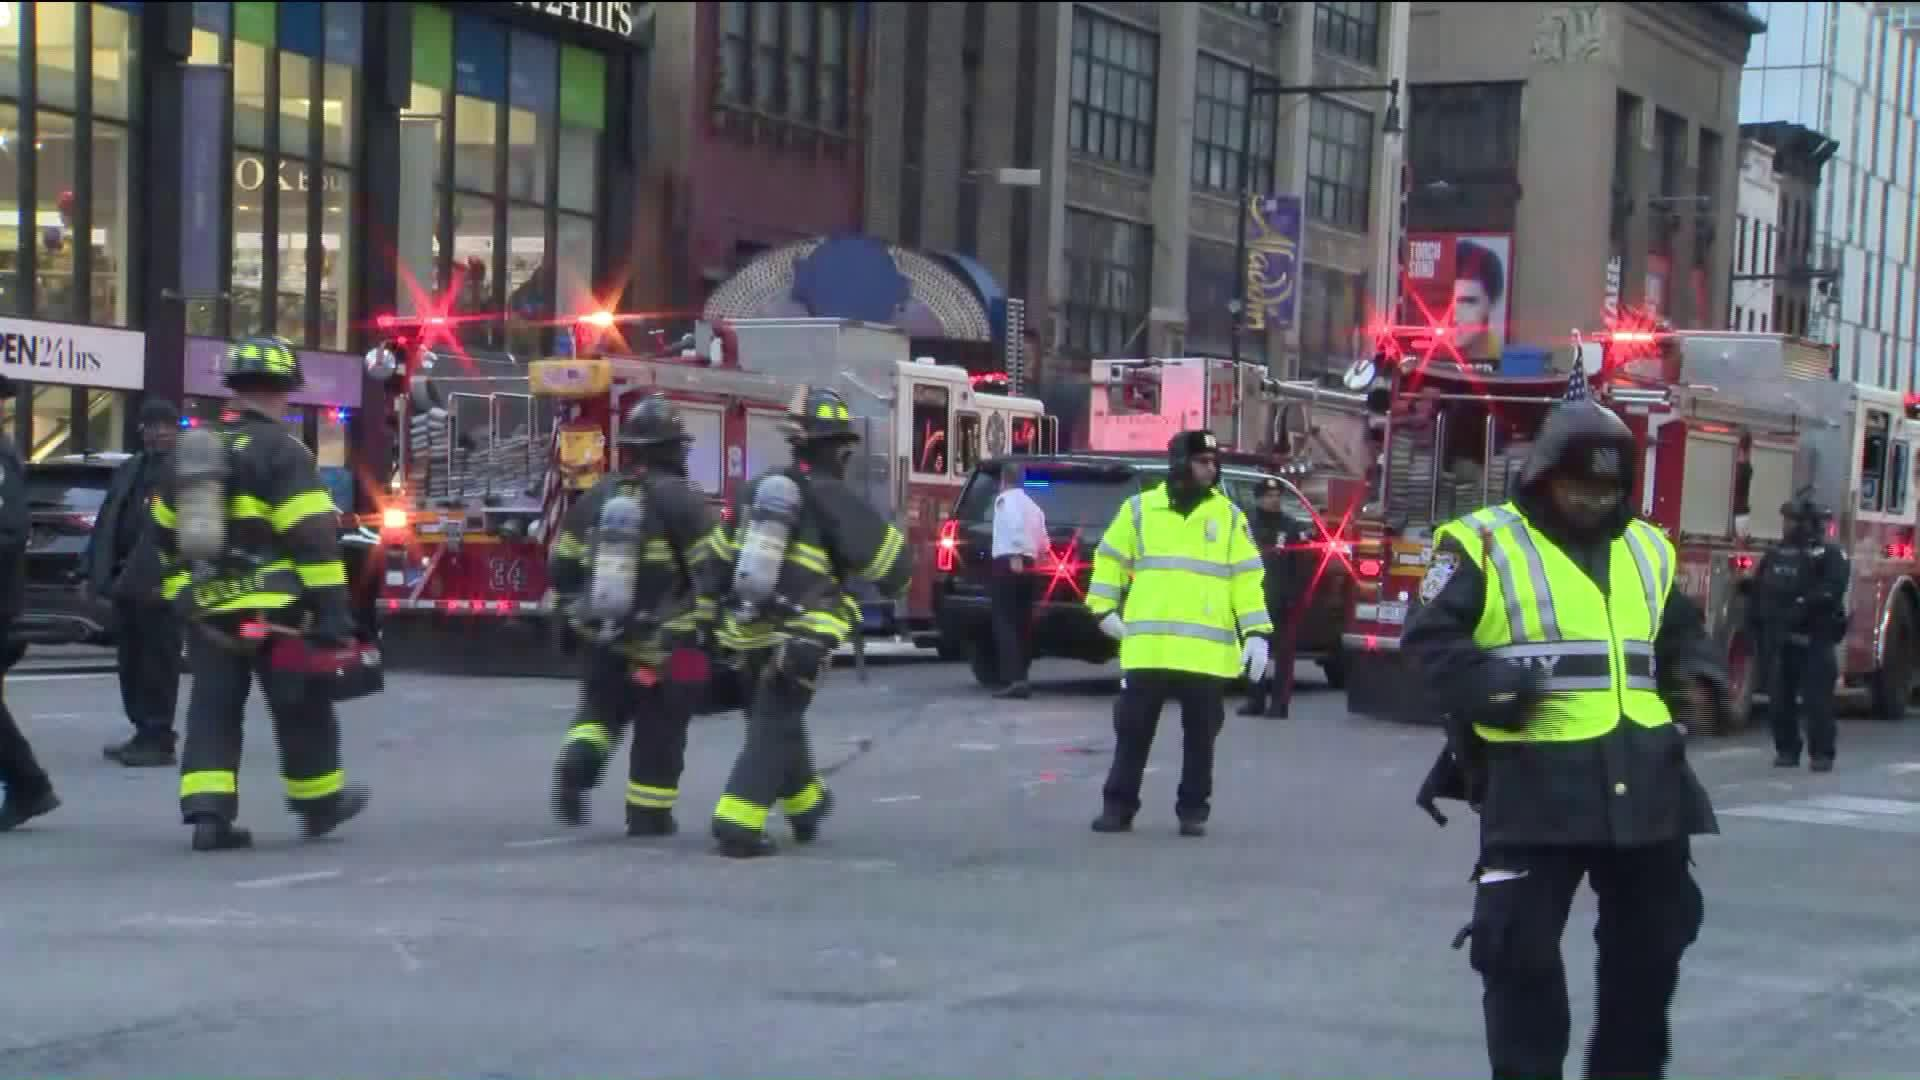 NYPD Responds to Explosion in Manhattan